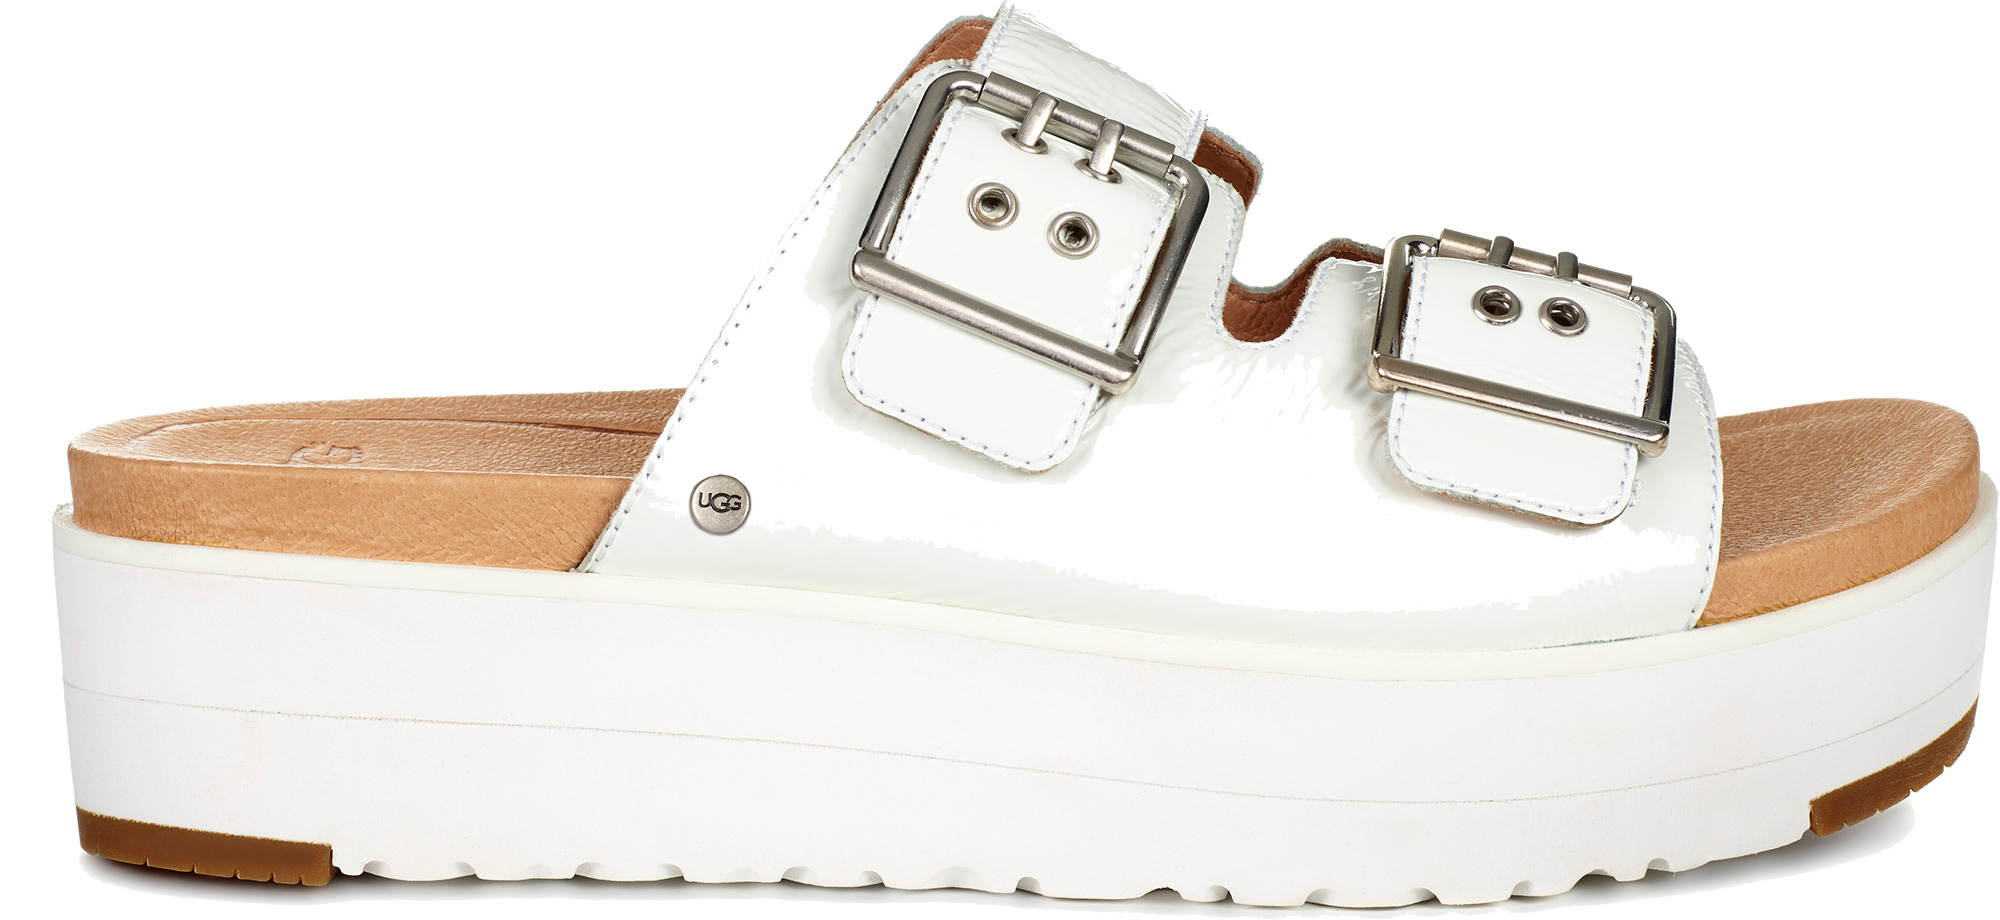 e21fe7f611a UGG Women s Cammie Slide Sandals Buckle Fastened Patent Leather Straps Uk5  White. About this product. Picture 1 of 5  Picture 2 of 5 ...